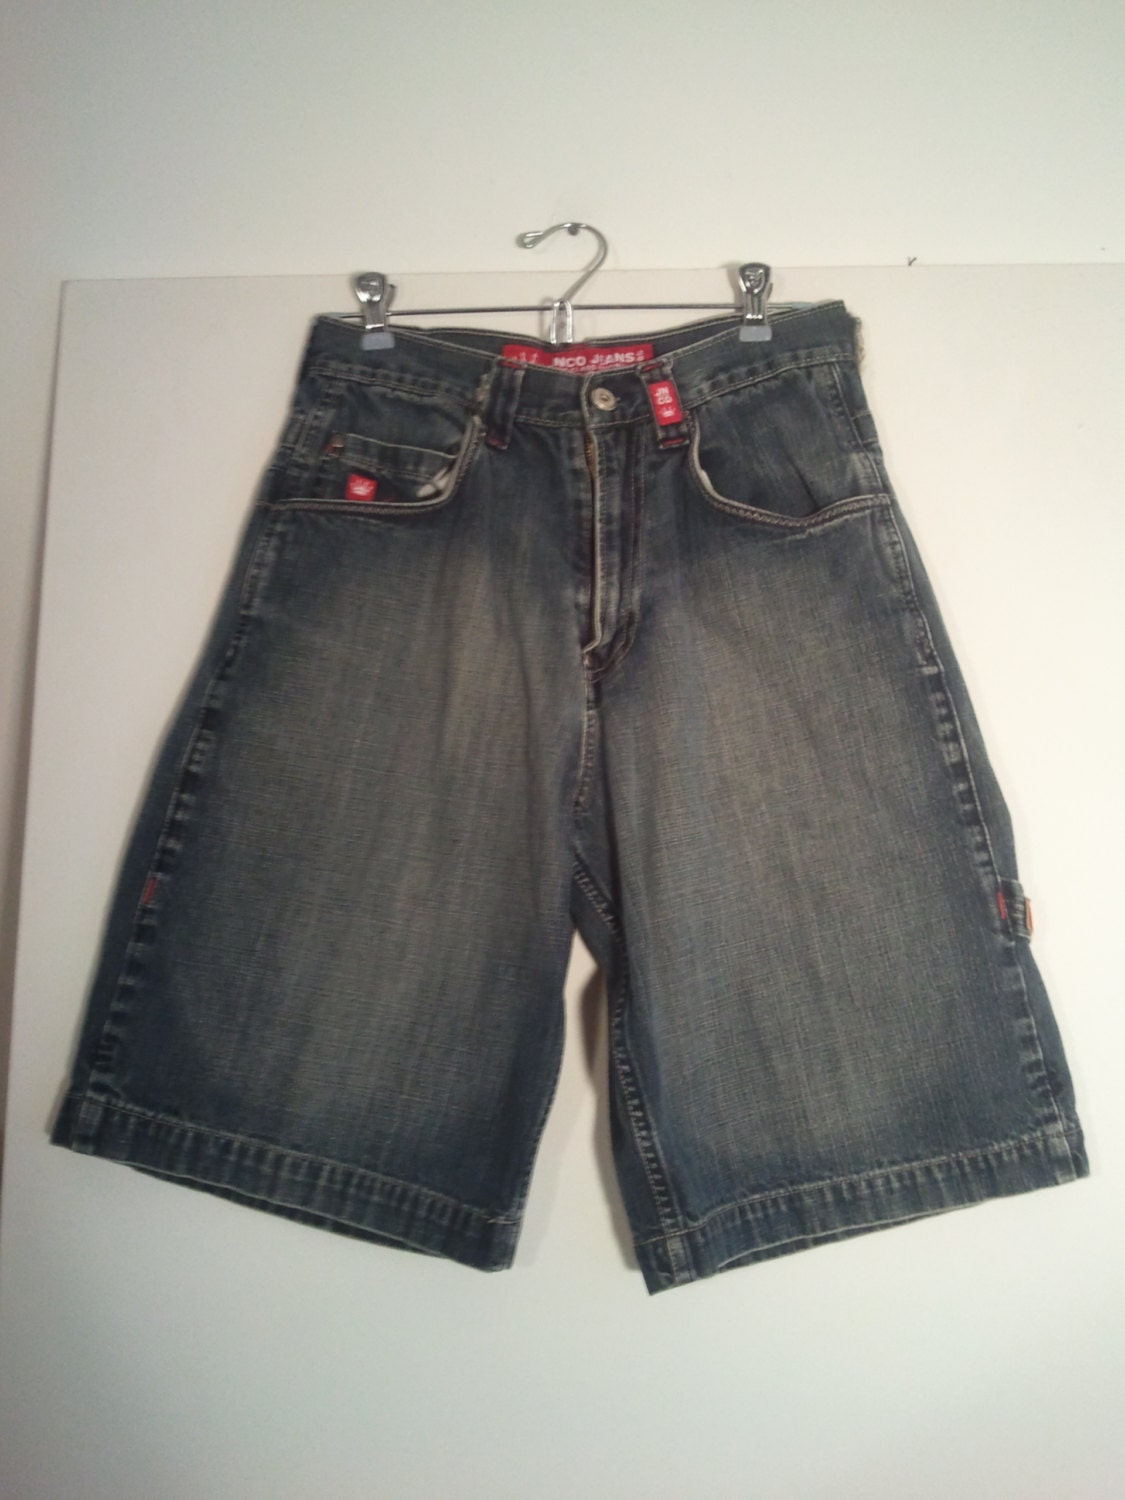 JNCO jeans shorts 90s rave grunge 29 small skull by BrightCloset